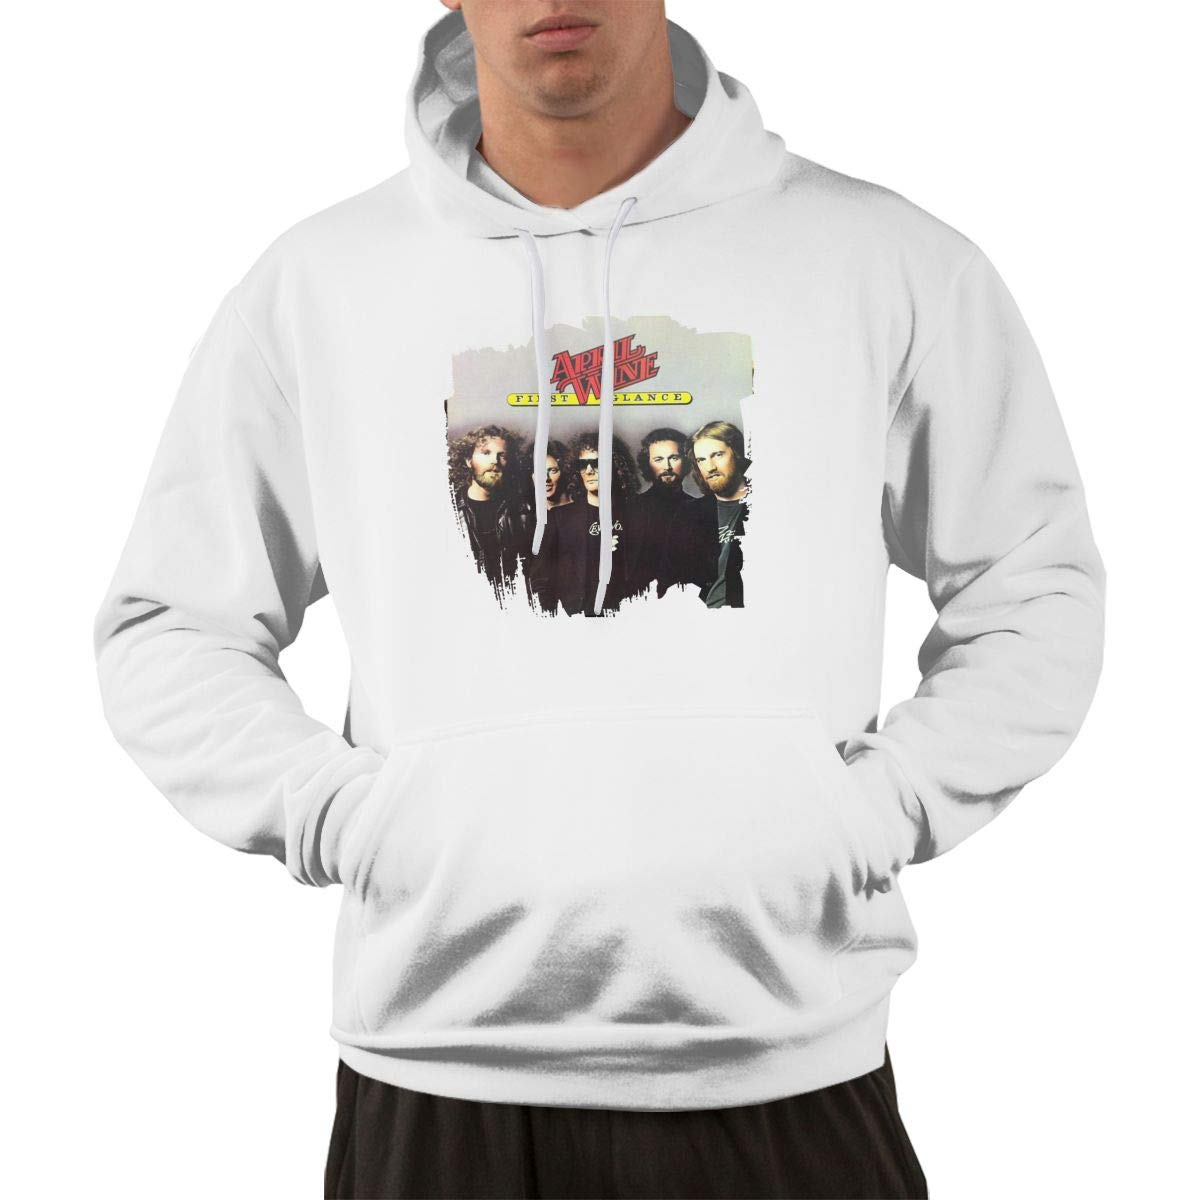 Erman Pullover Warm Print April Wine Music Band Hooded Shirts With Pocket L